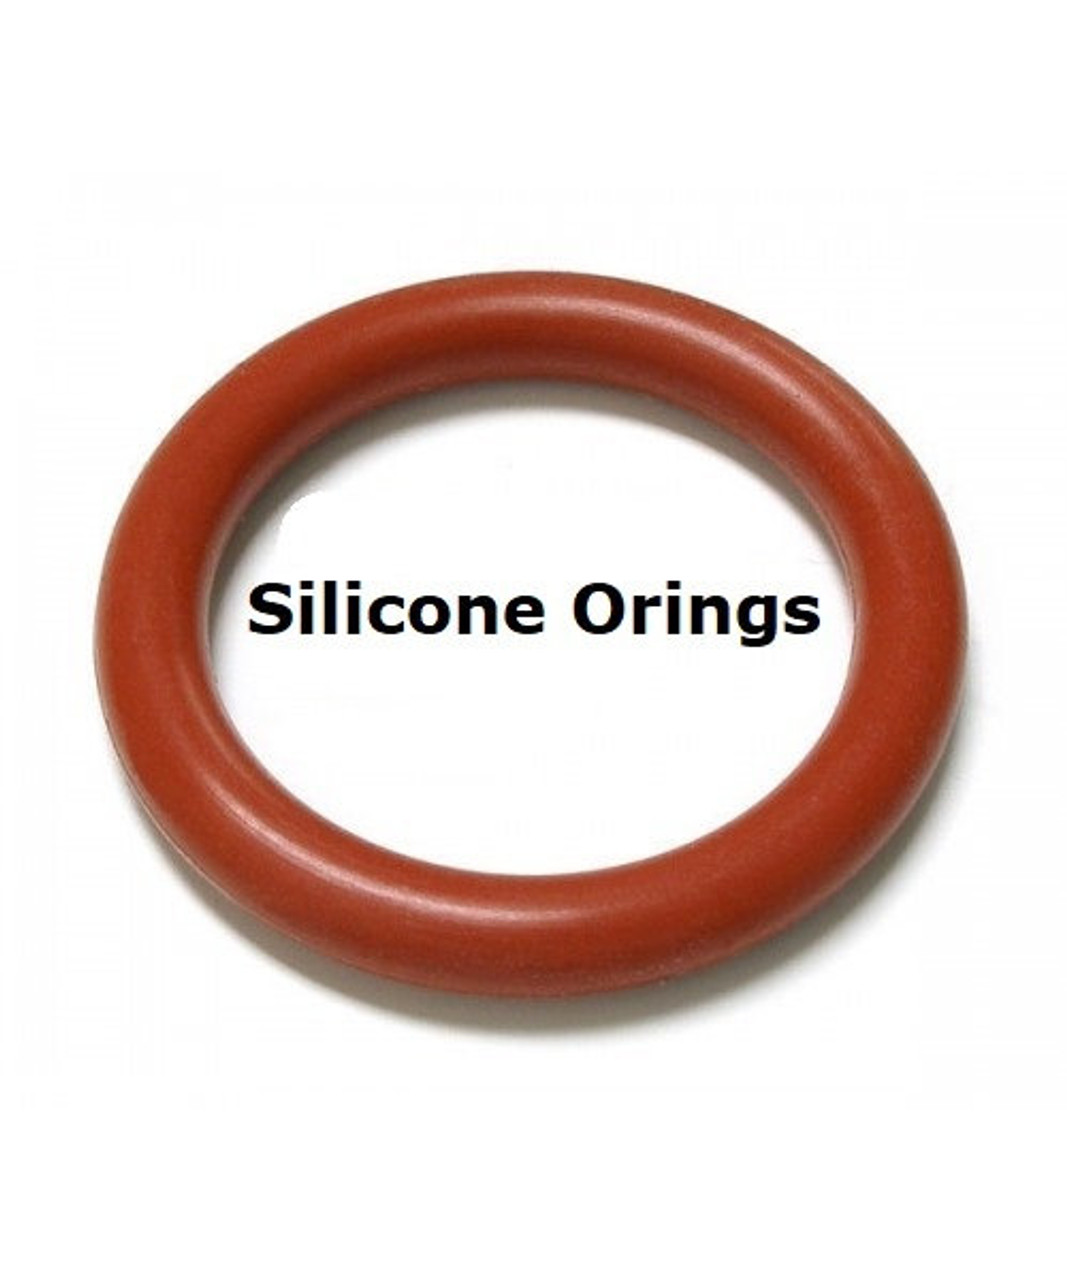 Silicone O-rings Size 001   Price for 100 pcs